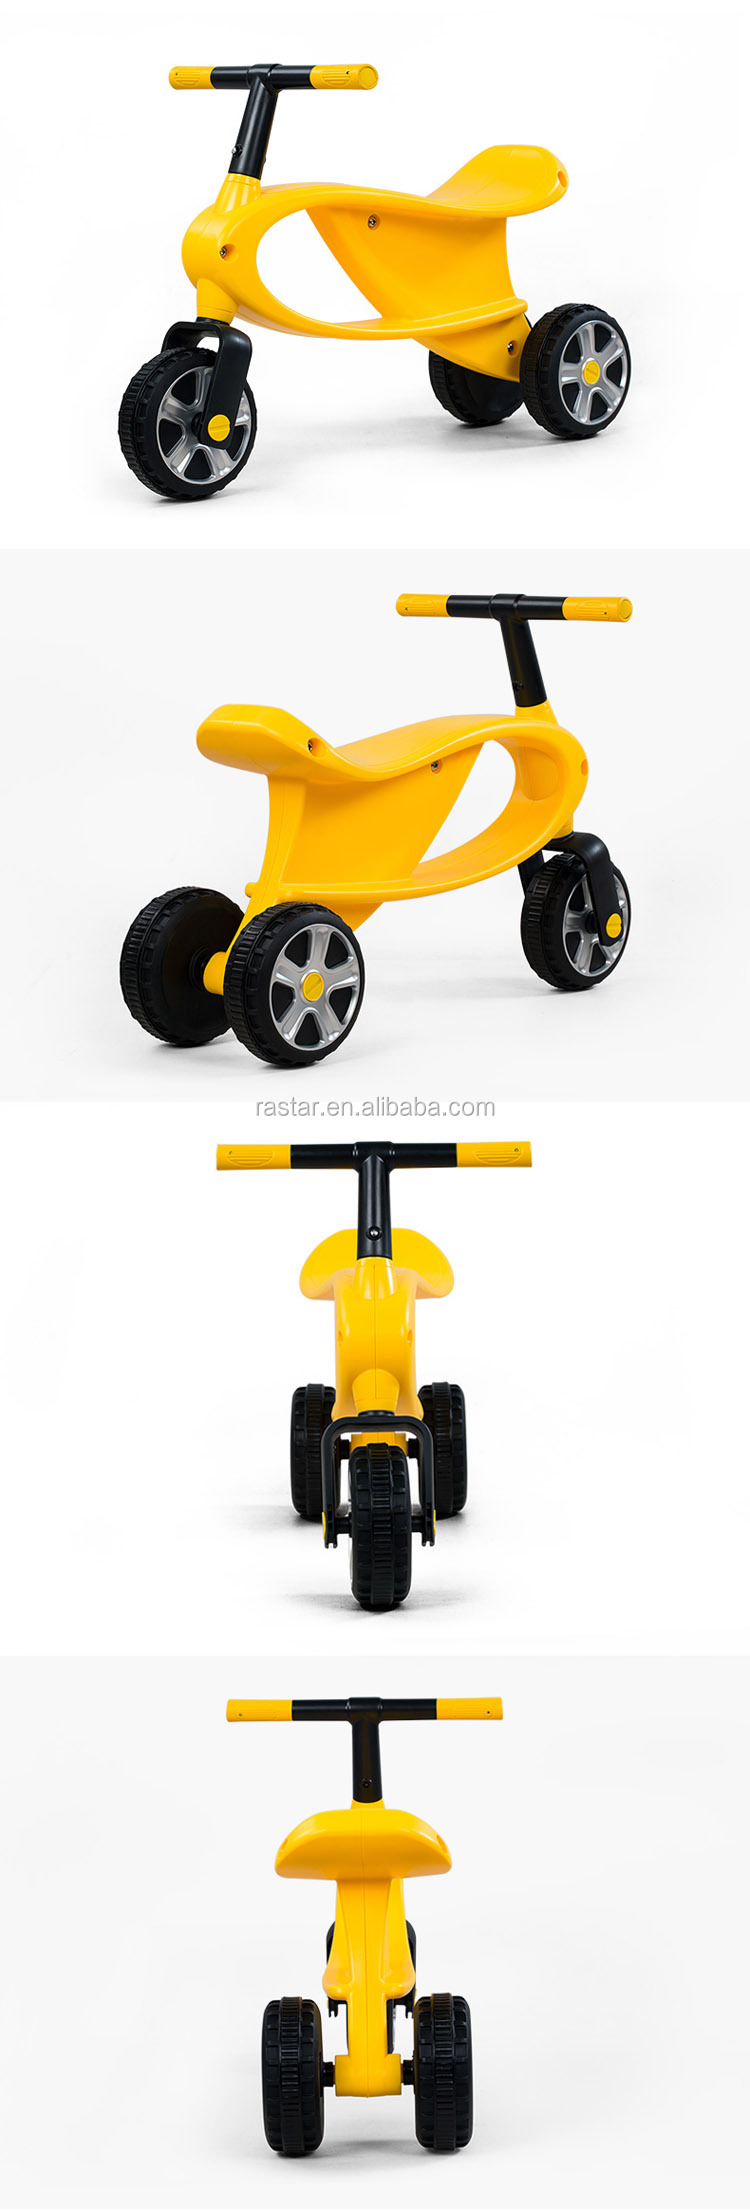 Rastar hot sale new model toy bicycle gogo bike